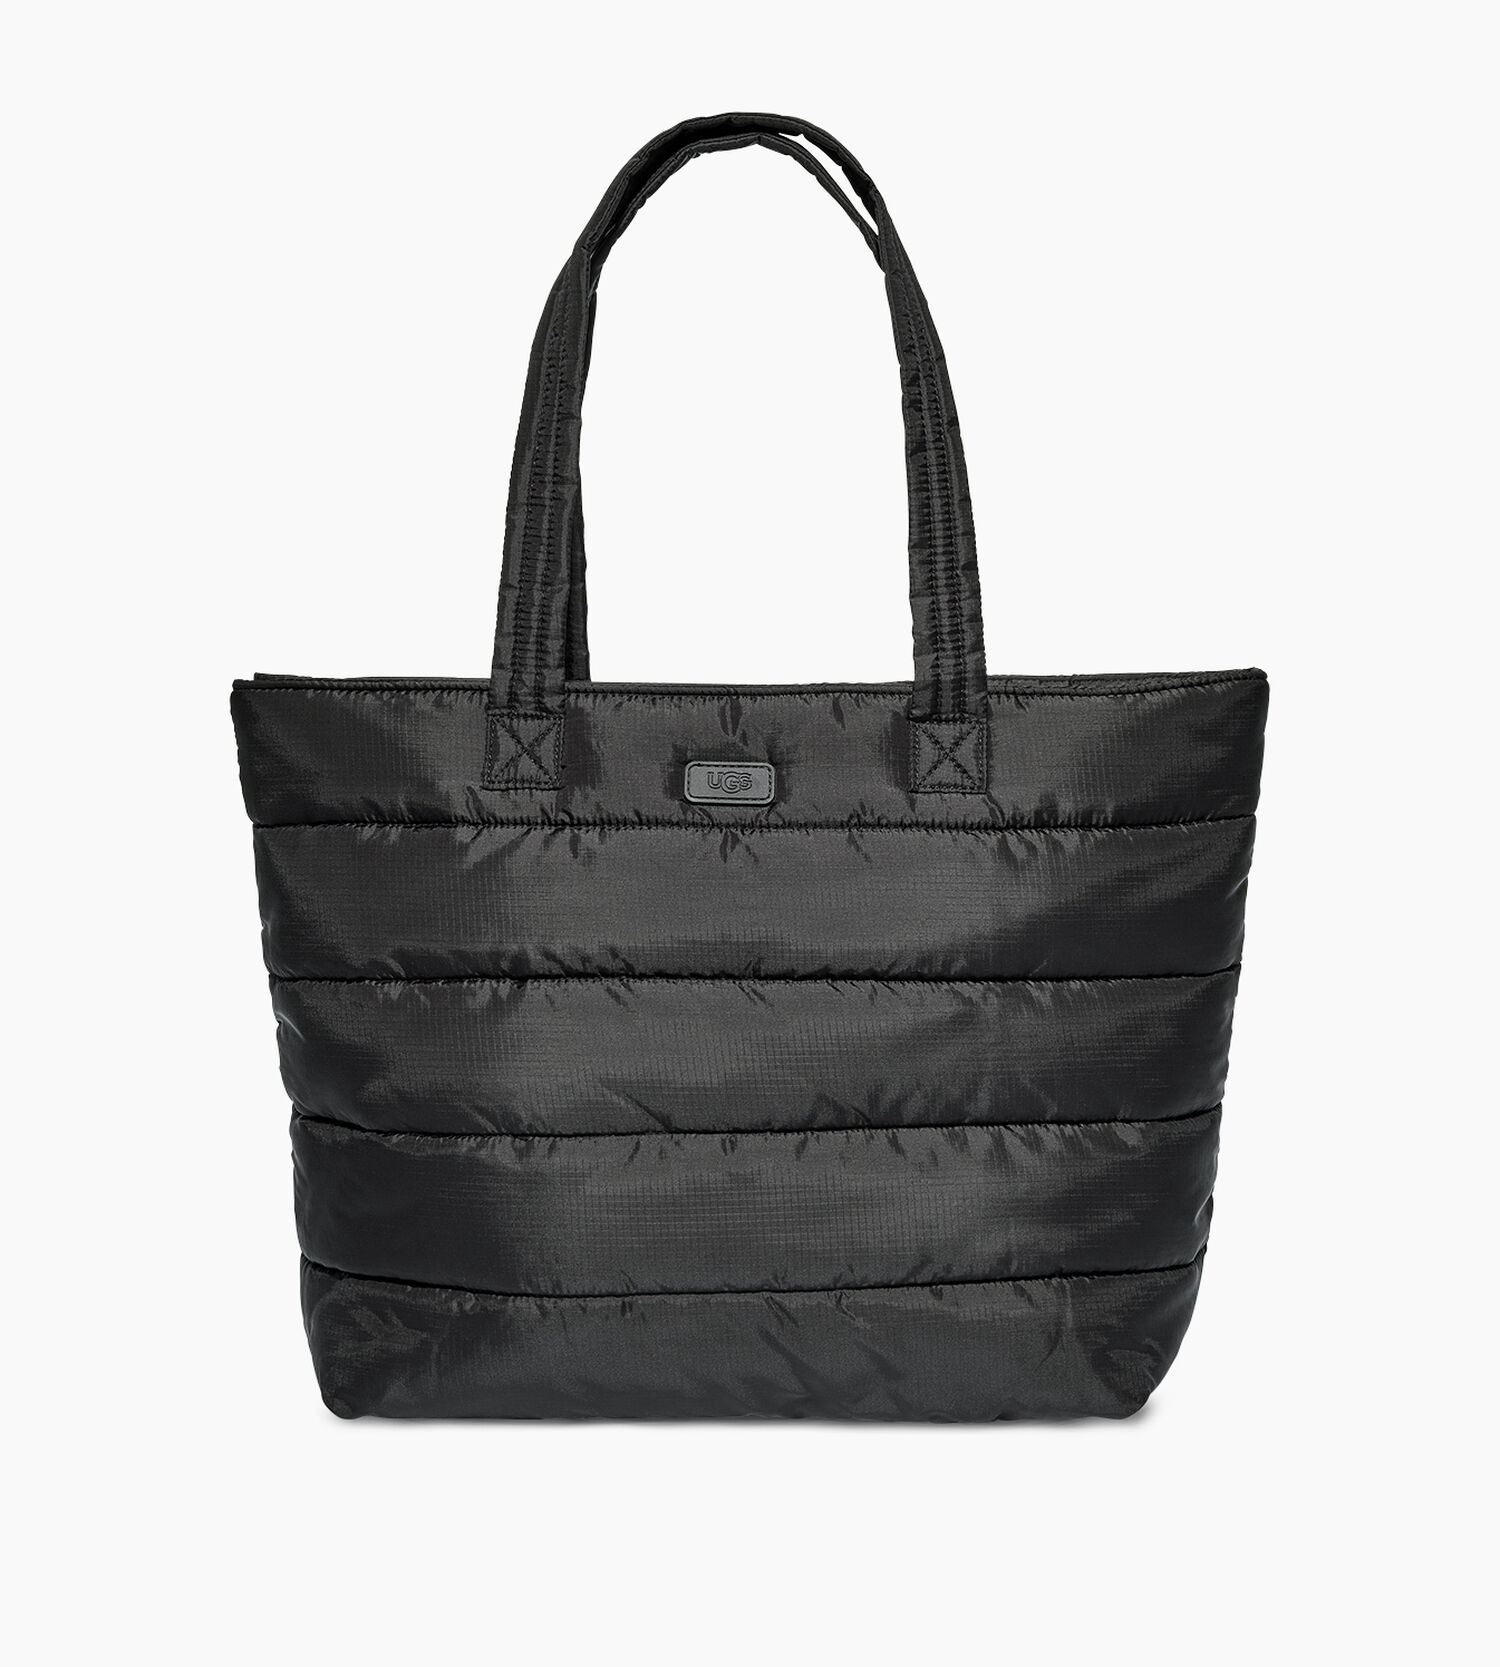 ae3fabe966c Women's Share this product Krystal Puffer Tote